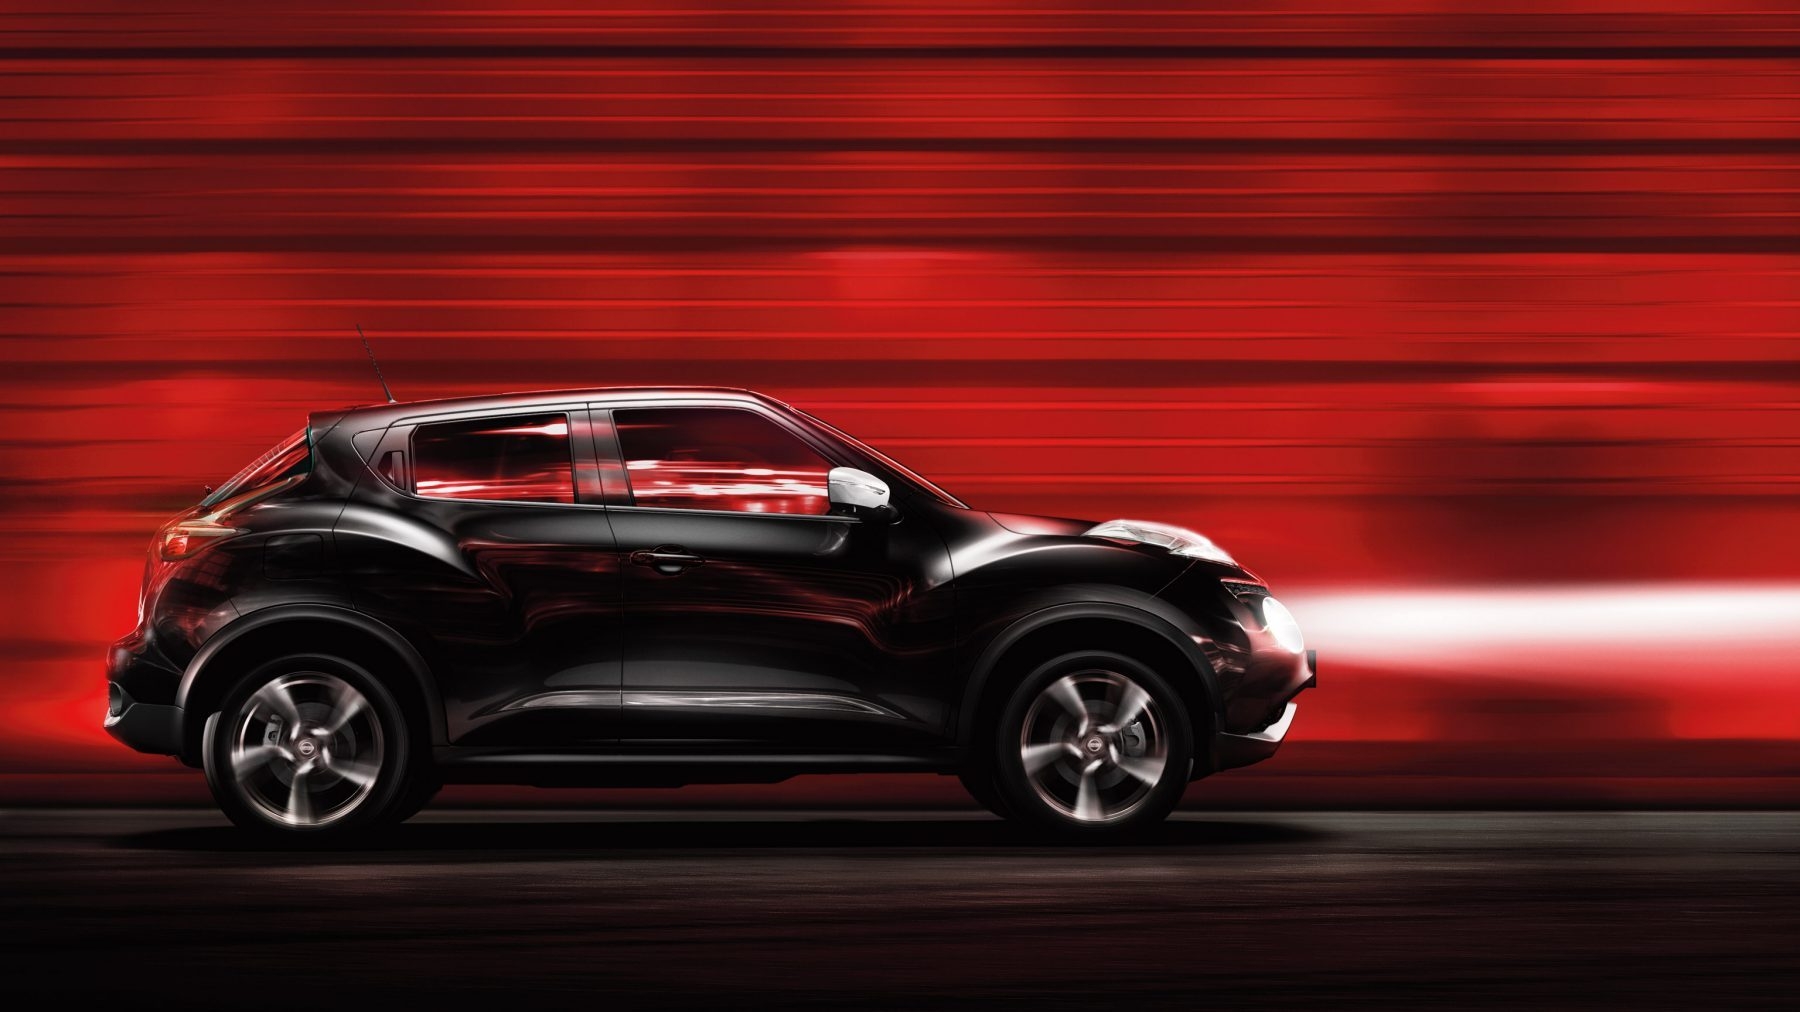 Nissan Juke - profile view